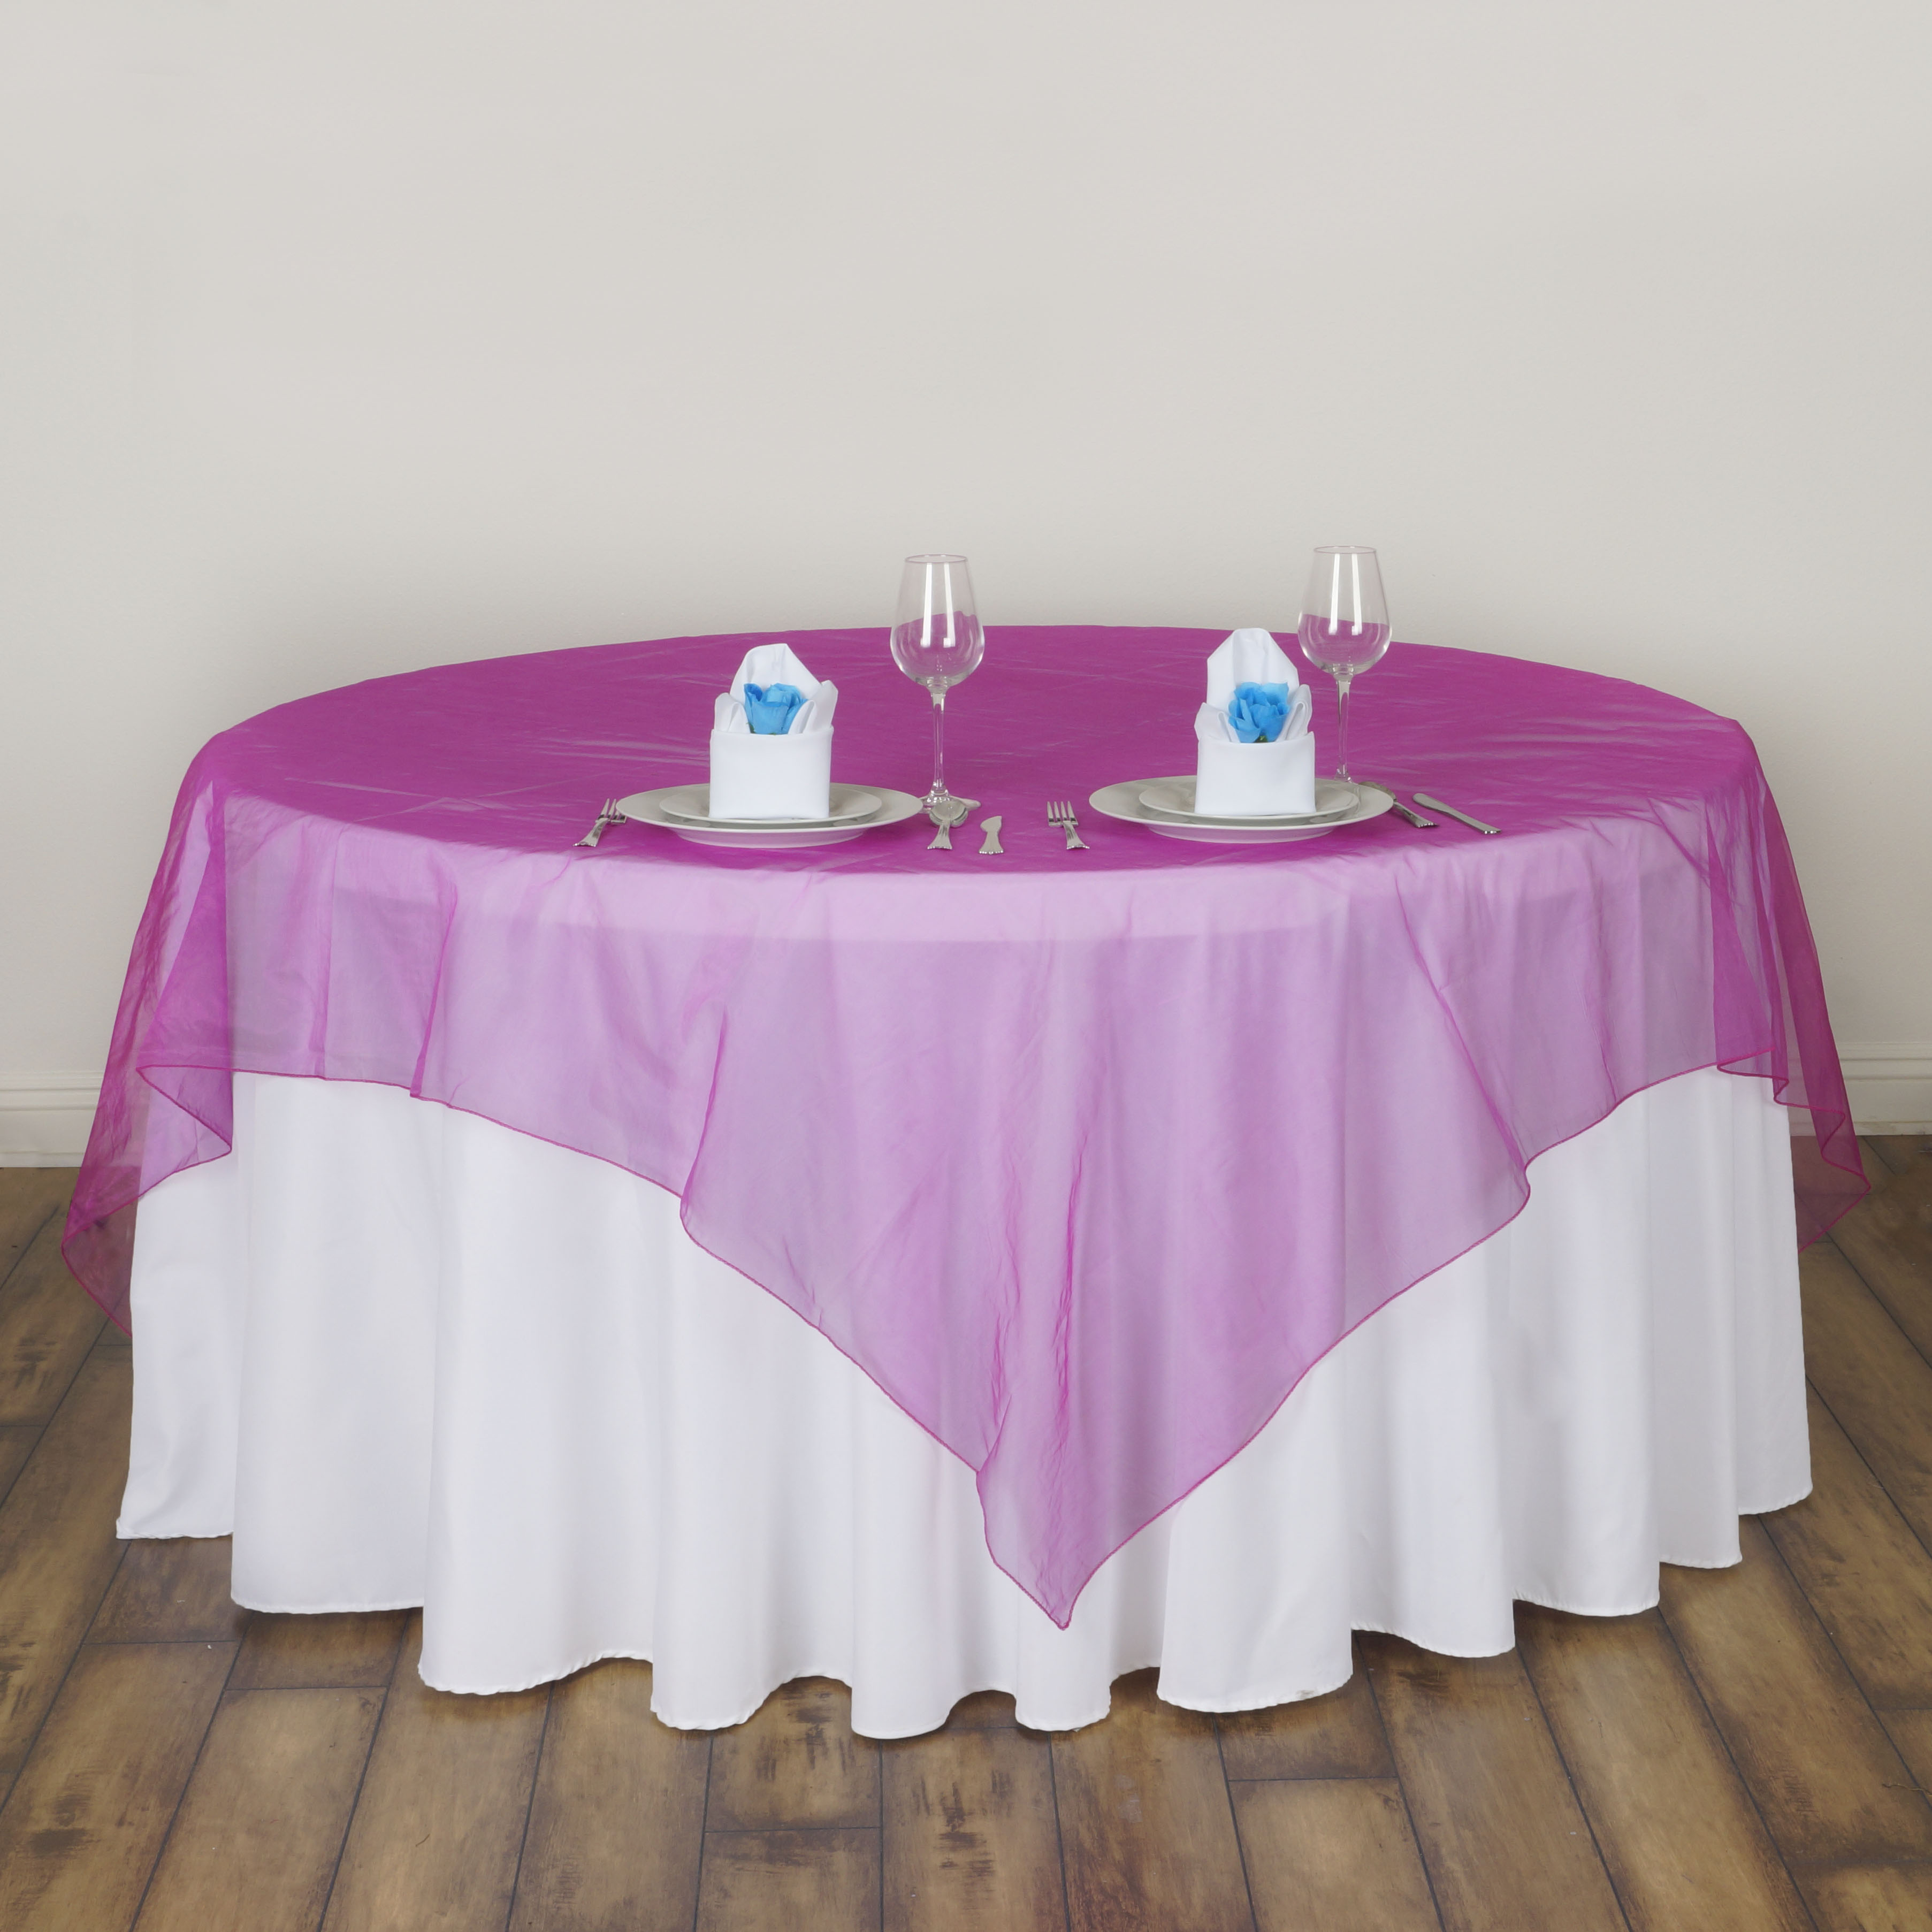 10 Pc 72x72 Quot Sheer Organza Table Overlays Wedding Party